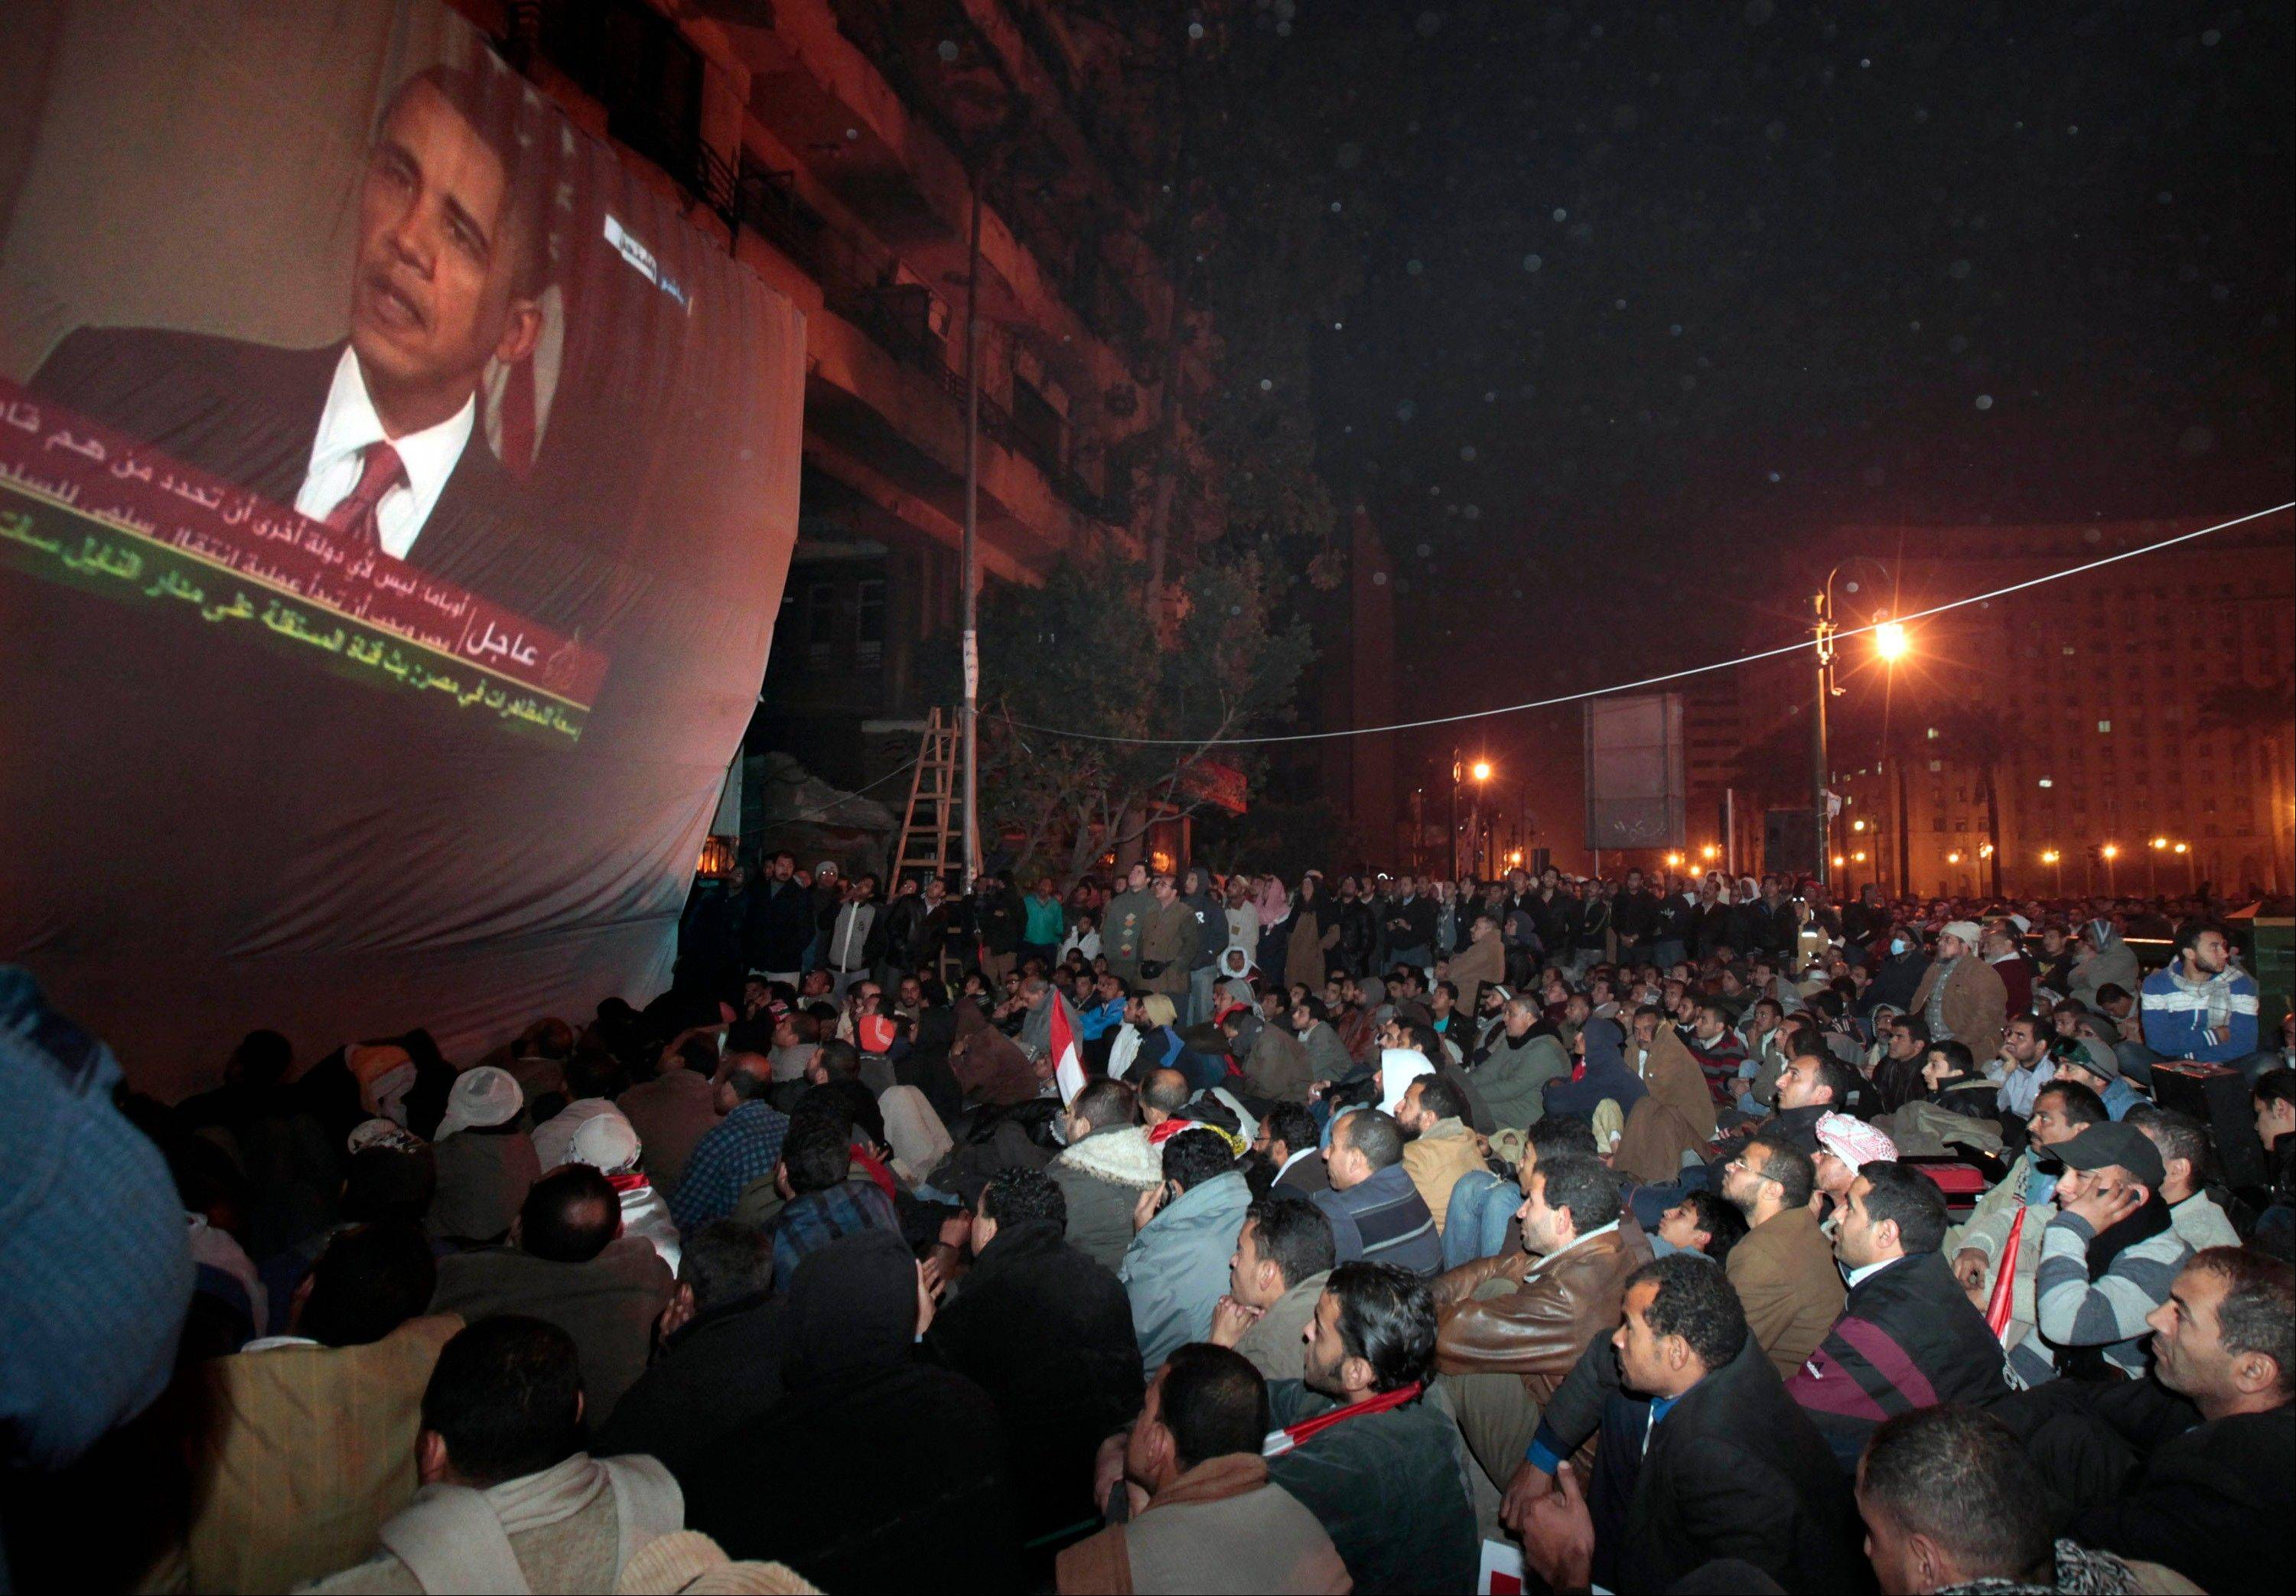 Anti-government protesters gathered in Tahrir (Liberation) Square in 2011 watch a screen showing U.S. President Barack Obama live on a TV broadcast from Washington, speaking about the situation in Egypt.